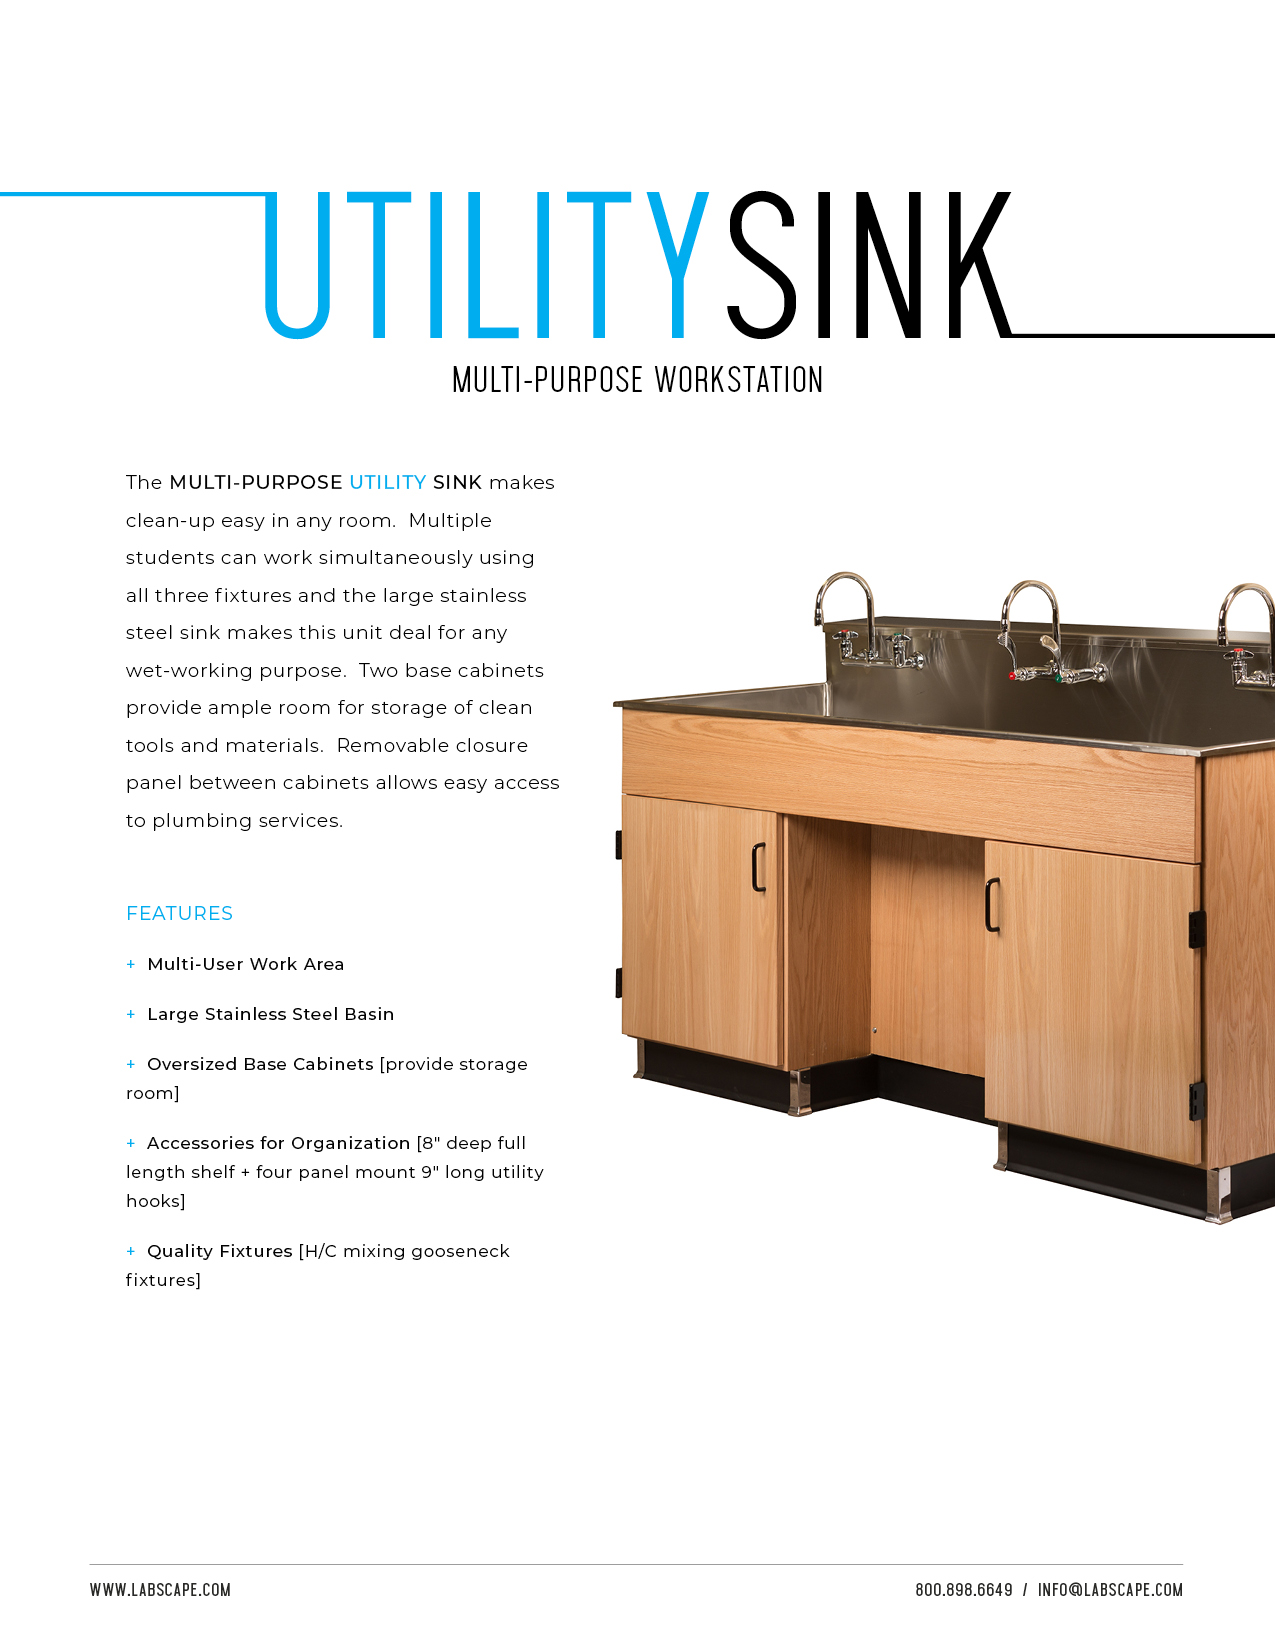 LS - MULTIPURPOSE UTILITY SINK.jpg